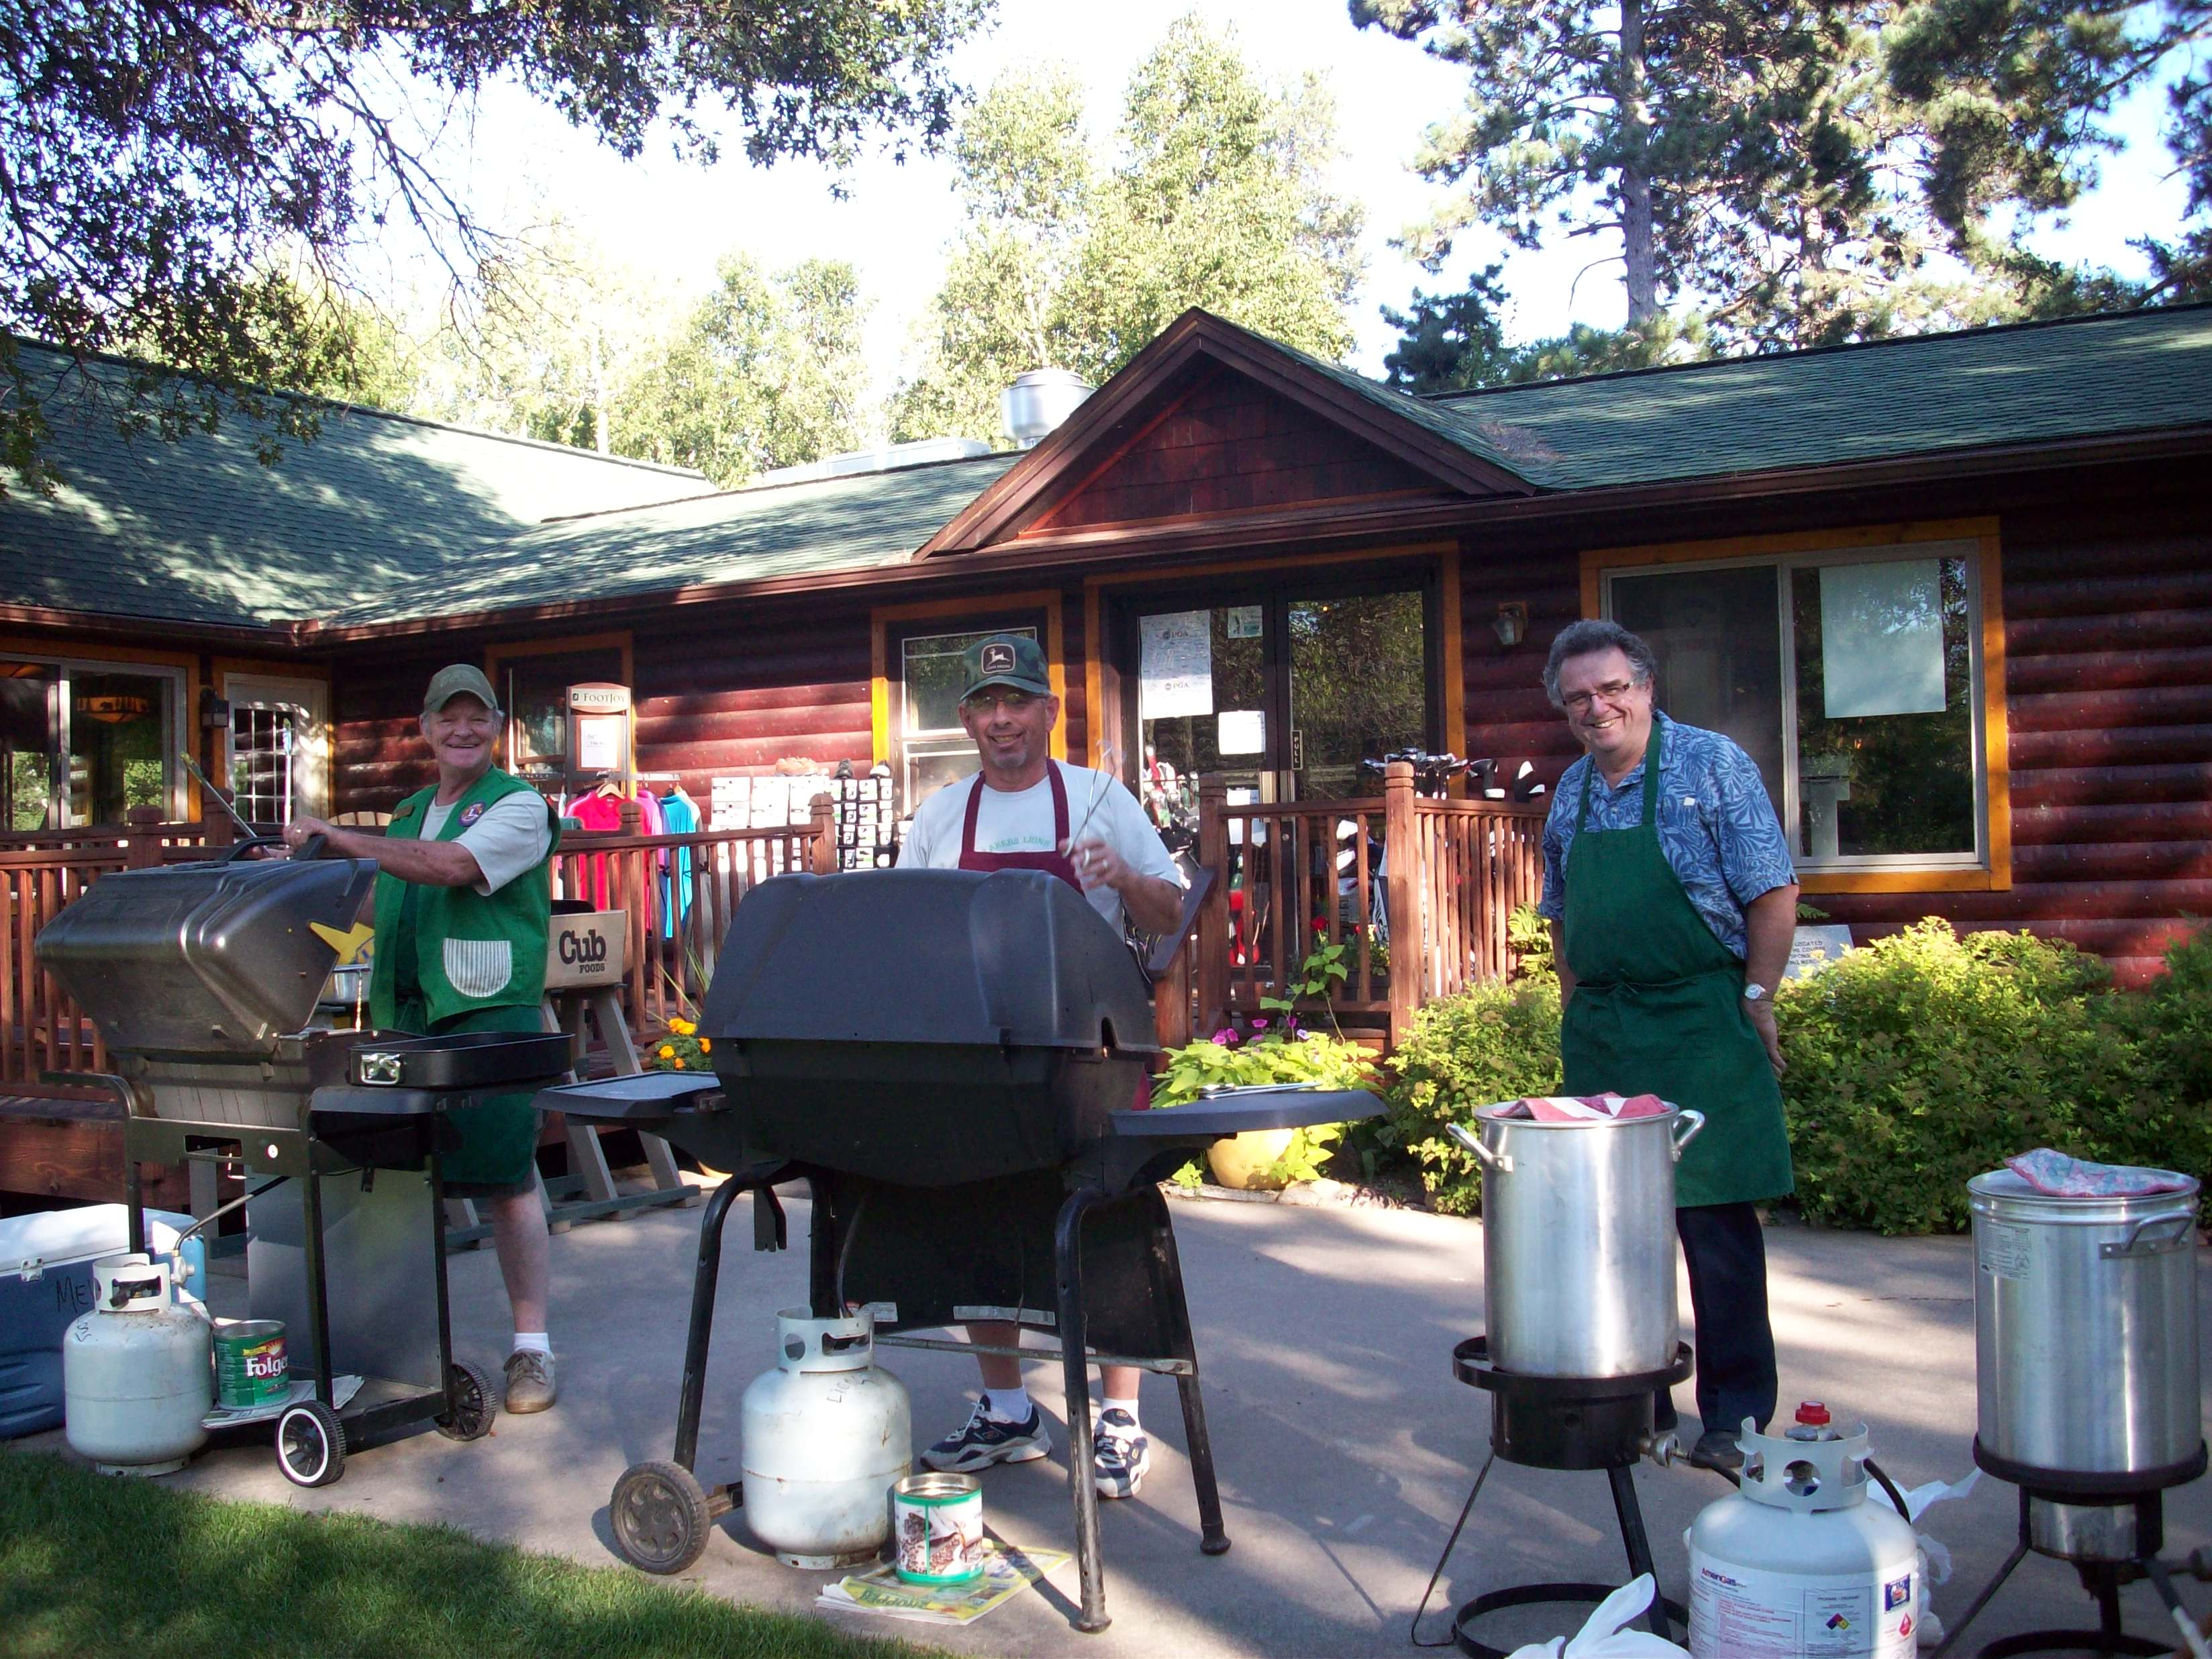 Cooking for Golfers